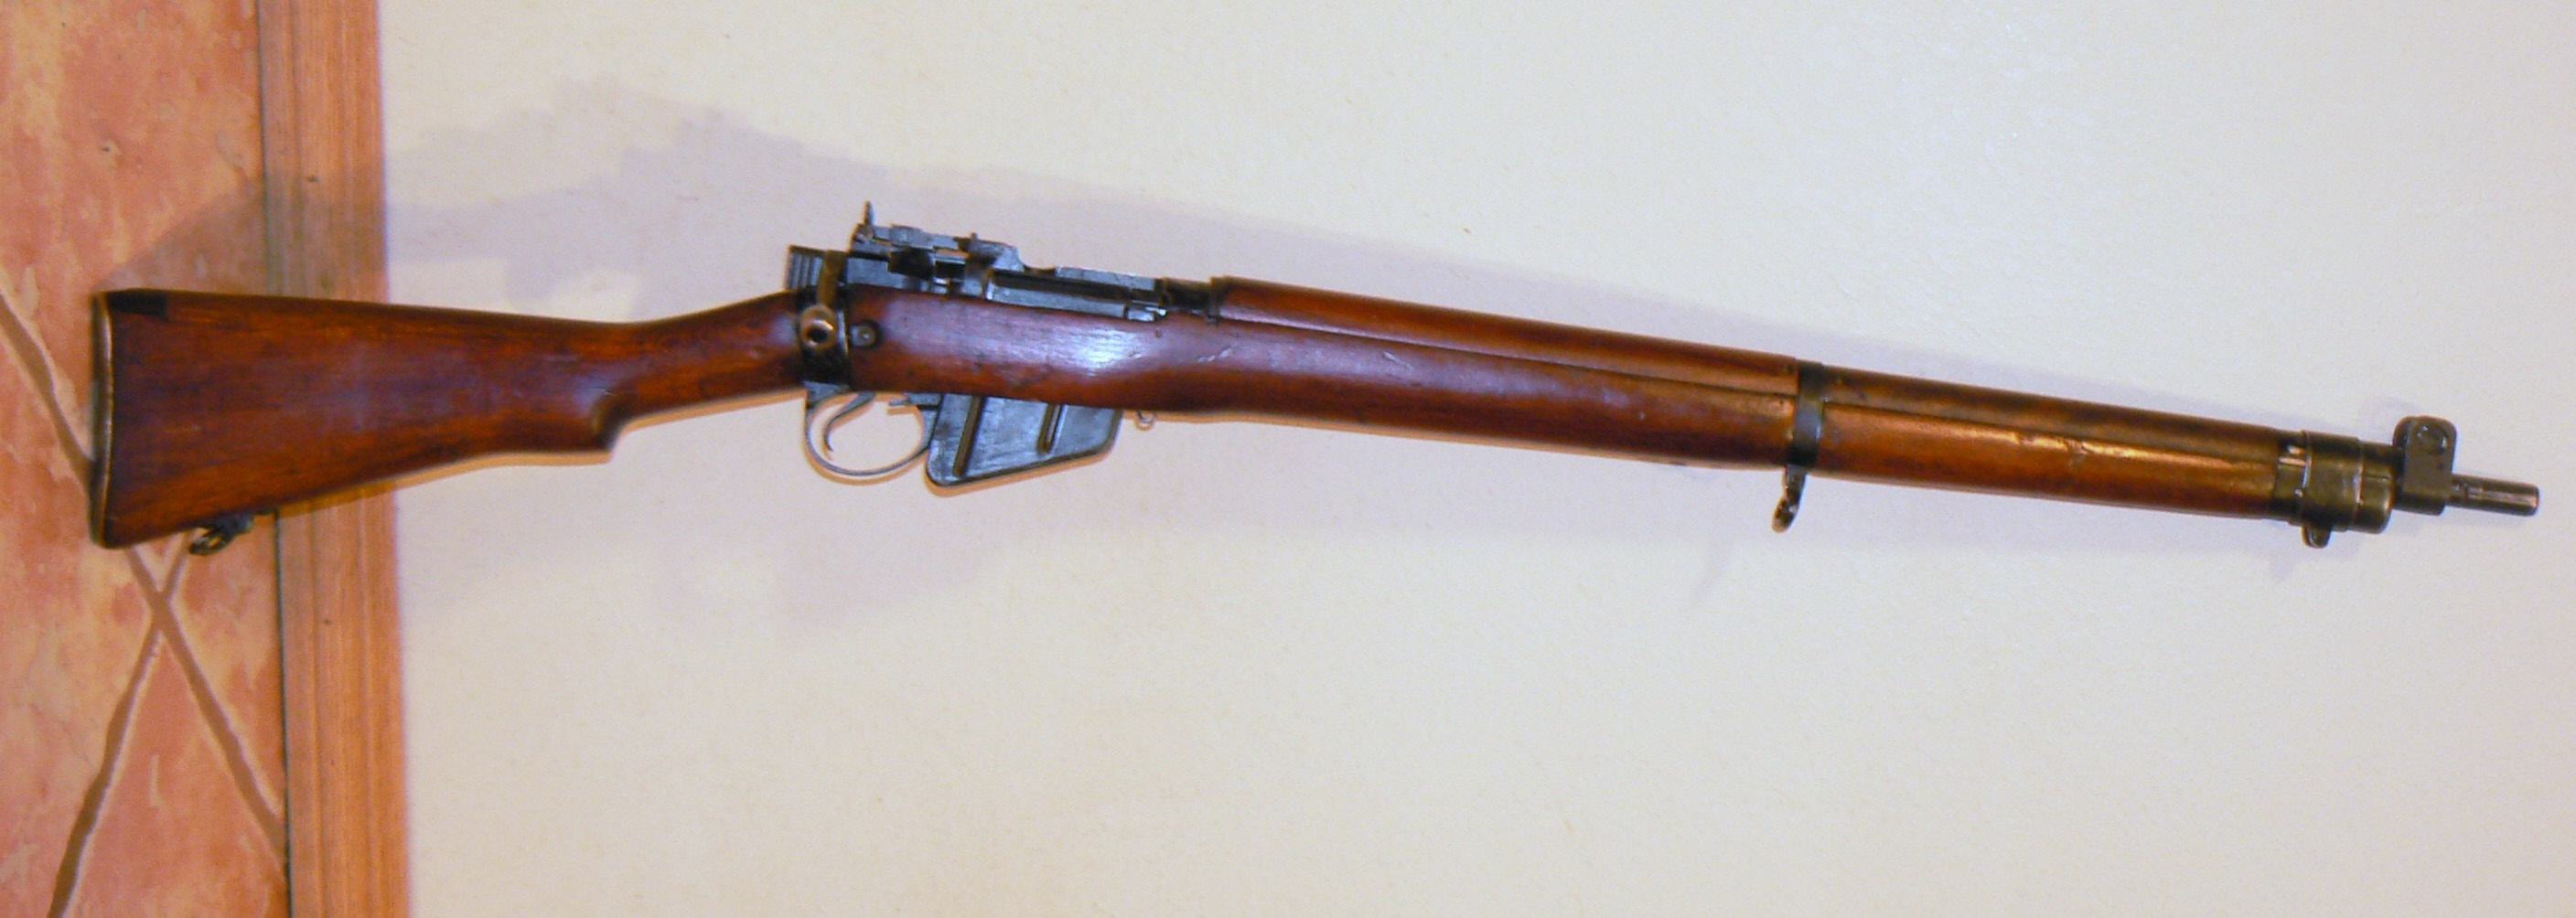 What Are Some Of The Oldest Yet Best Designed Firearms Quora